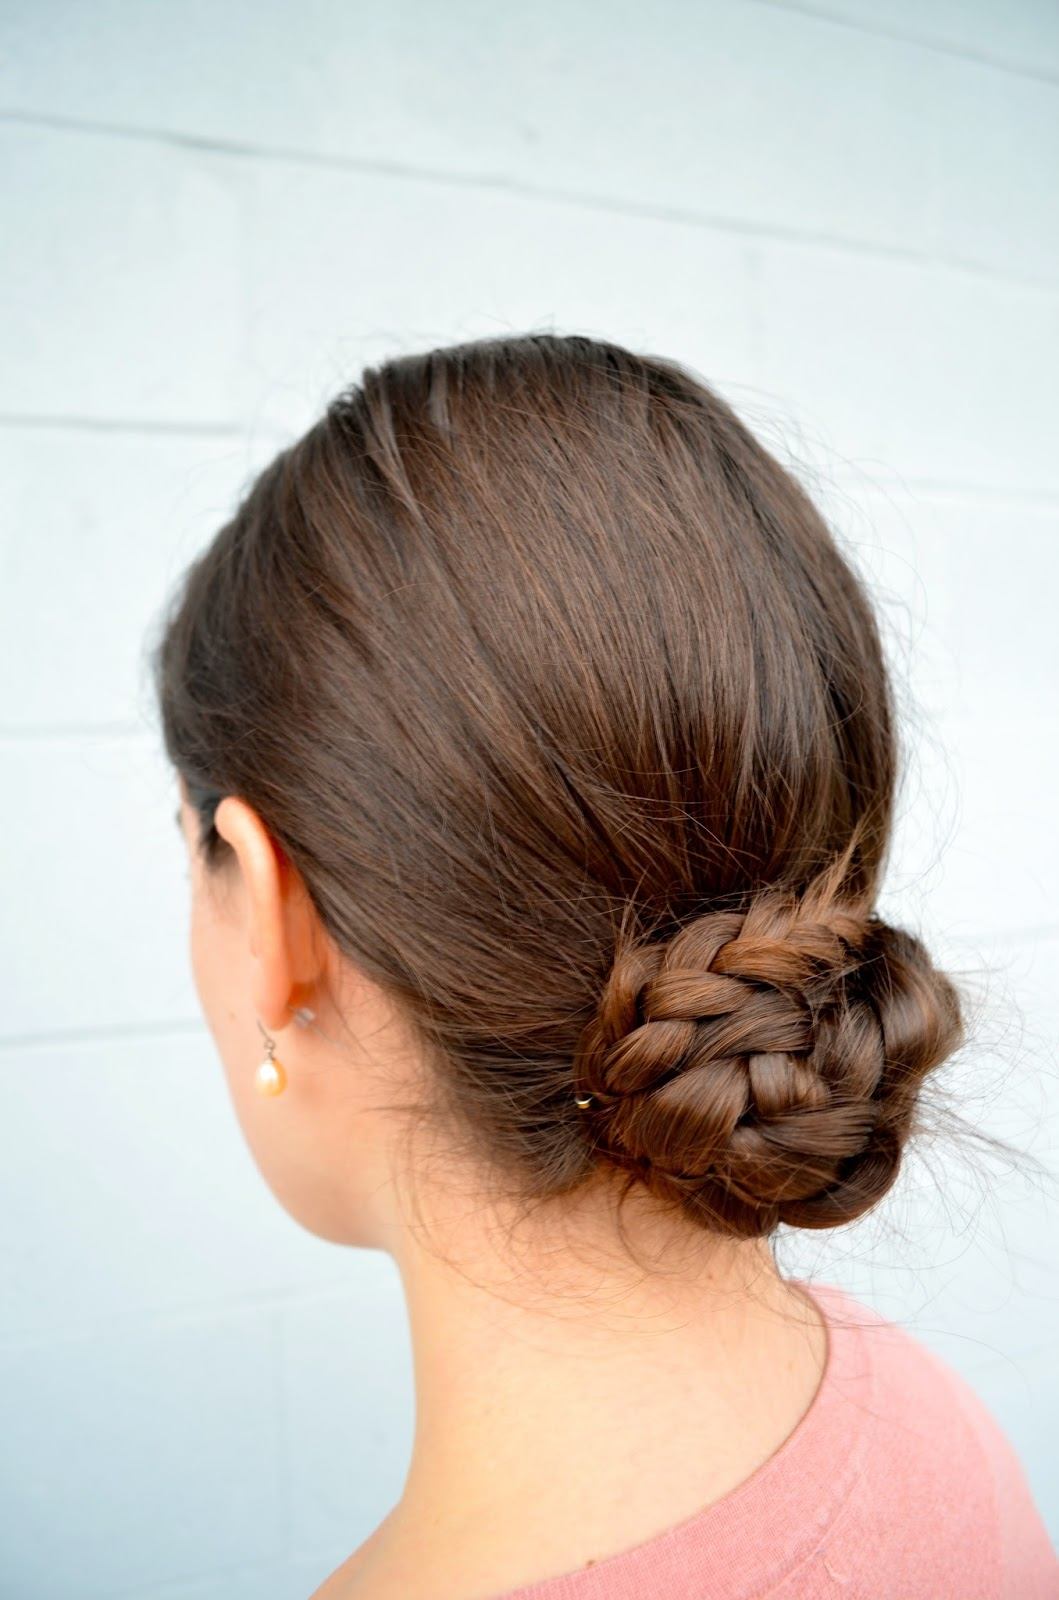 Hairstyle for a Daytime Date